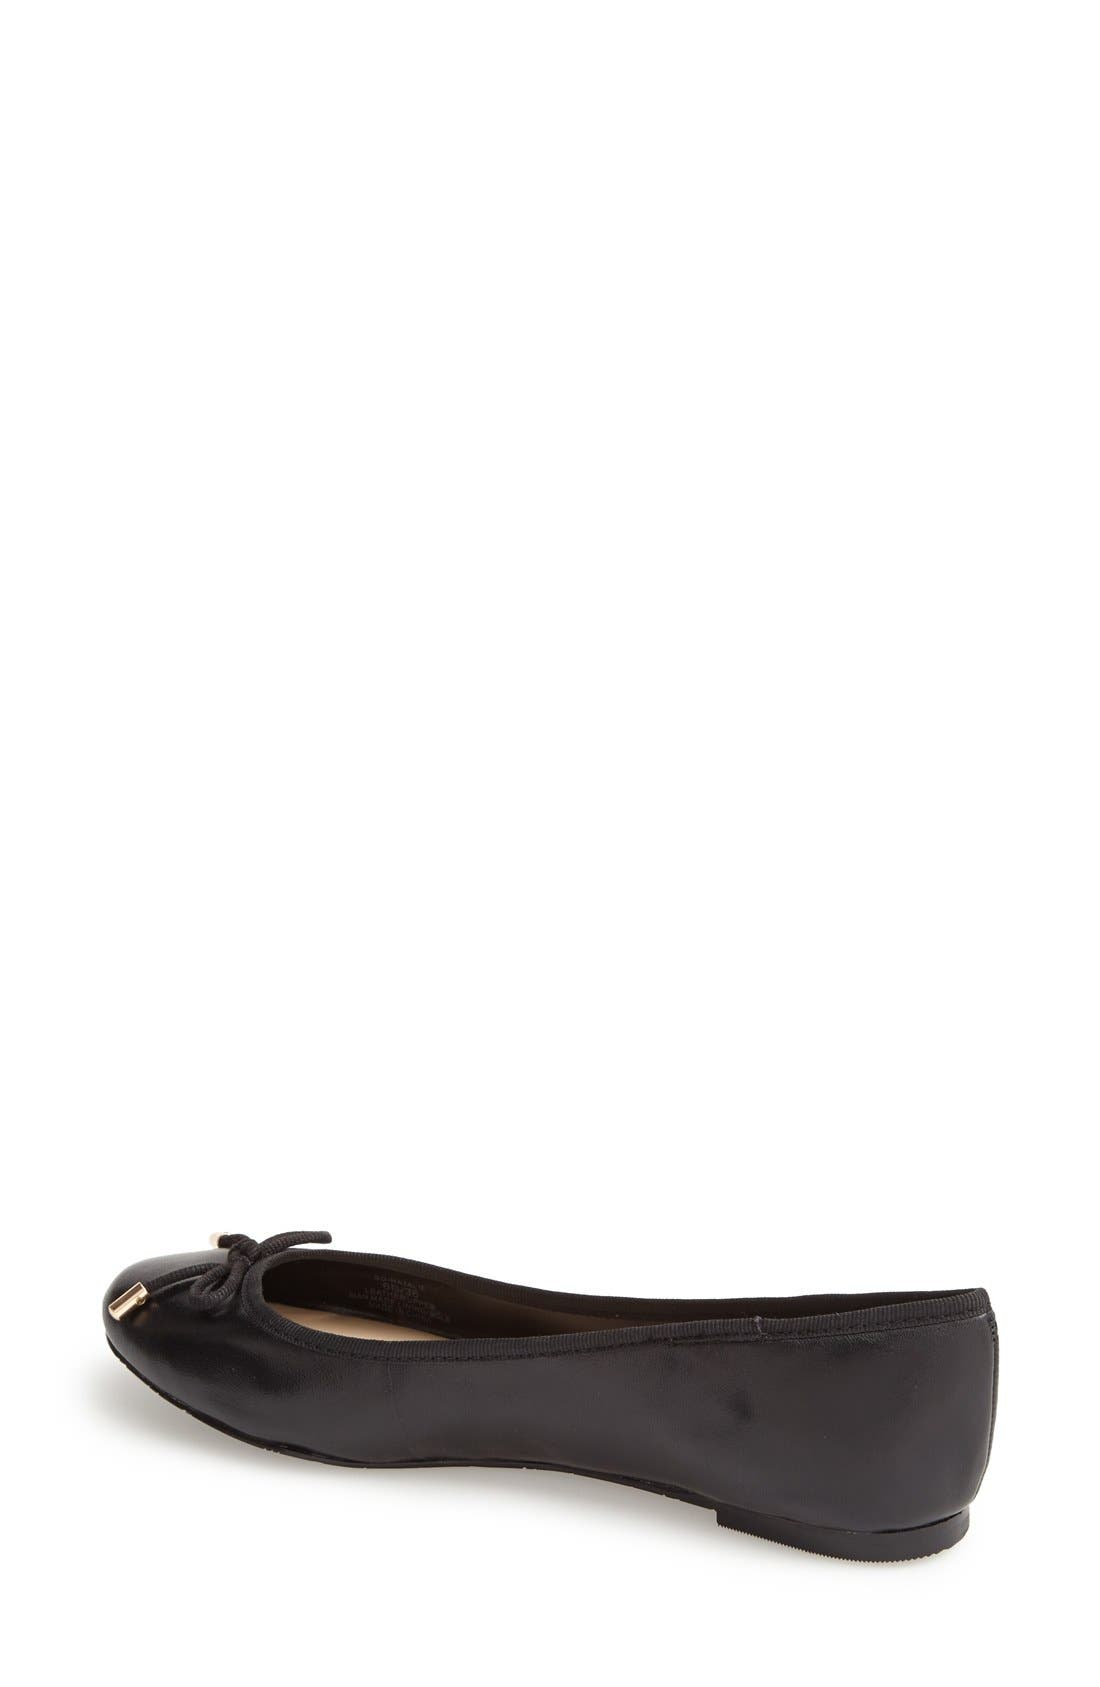 Alternate Image 2  - Sole Society 'Natalie' Leather Ballet Flat (Women)